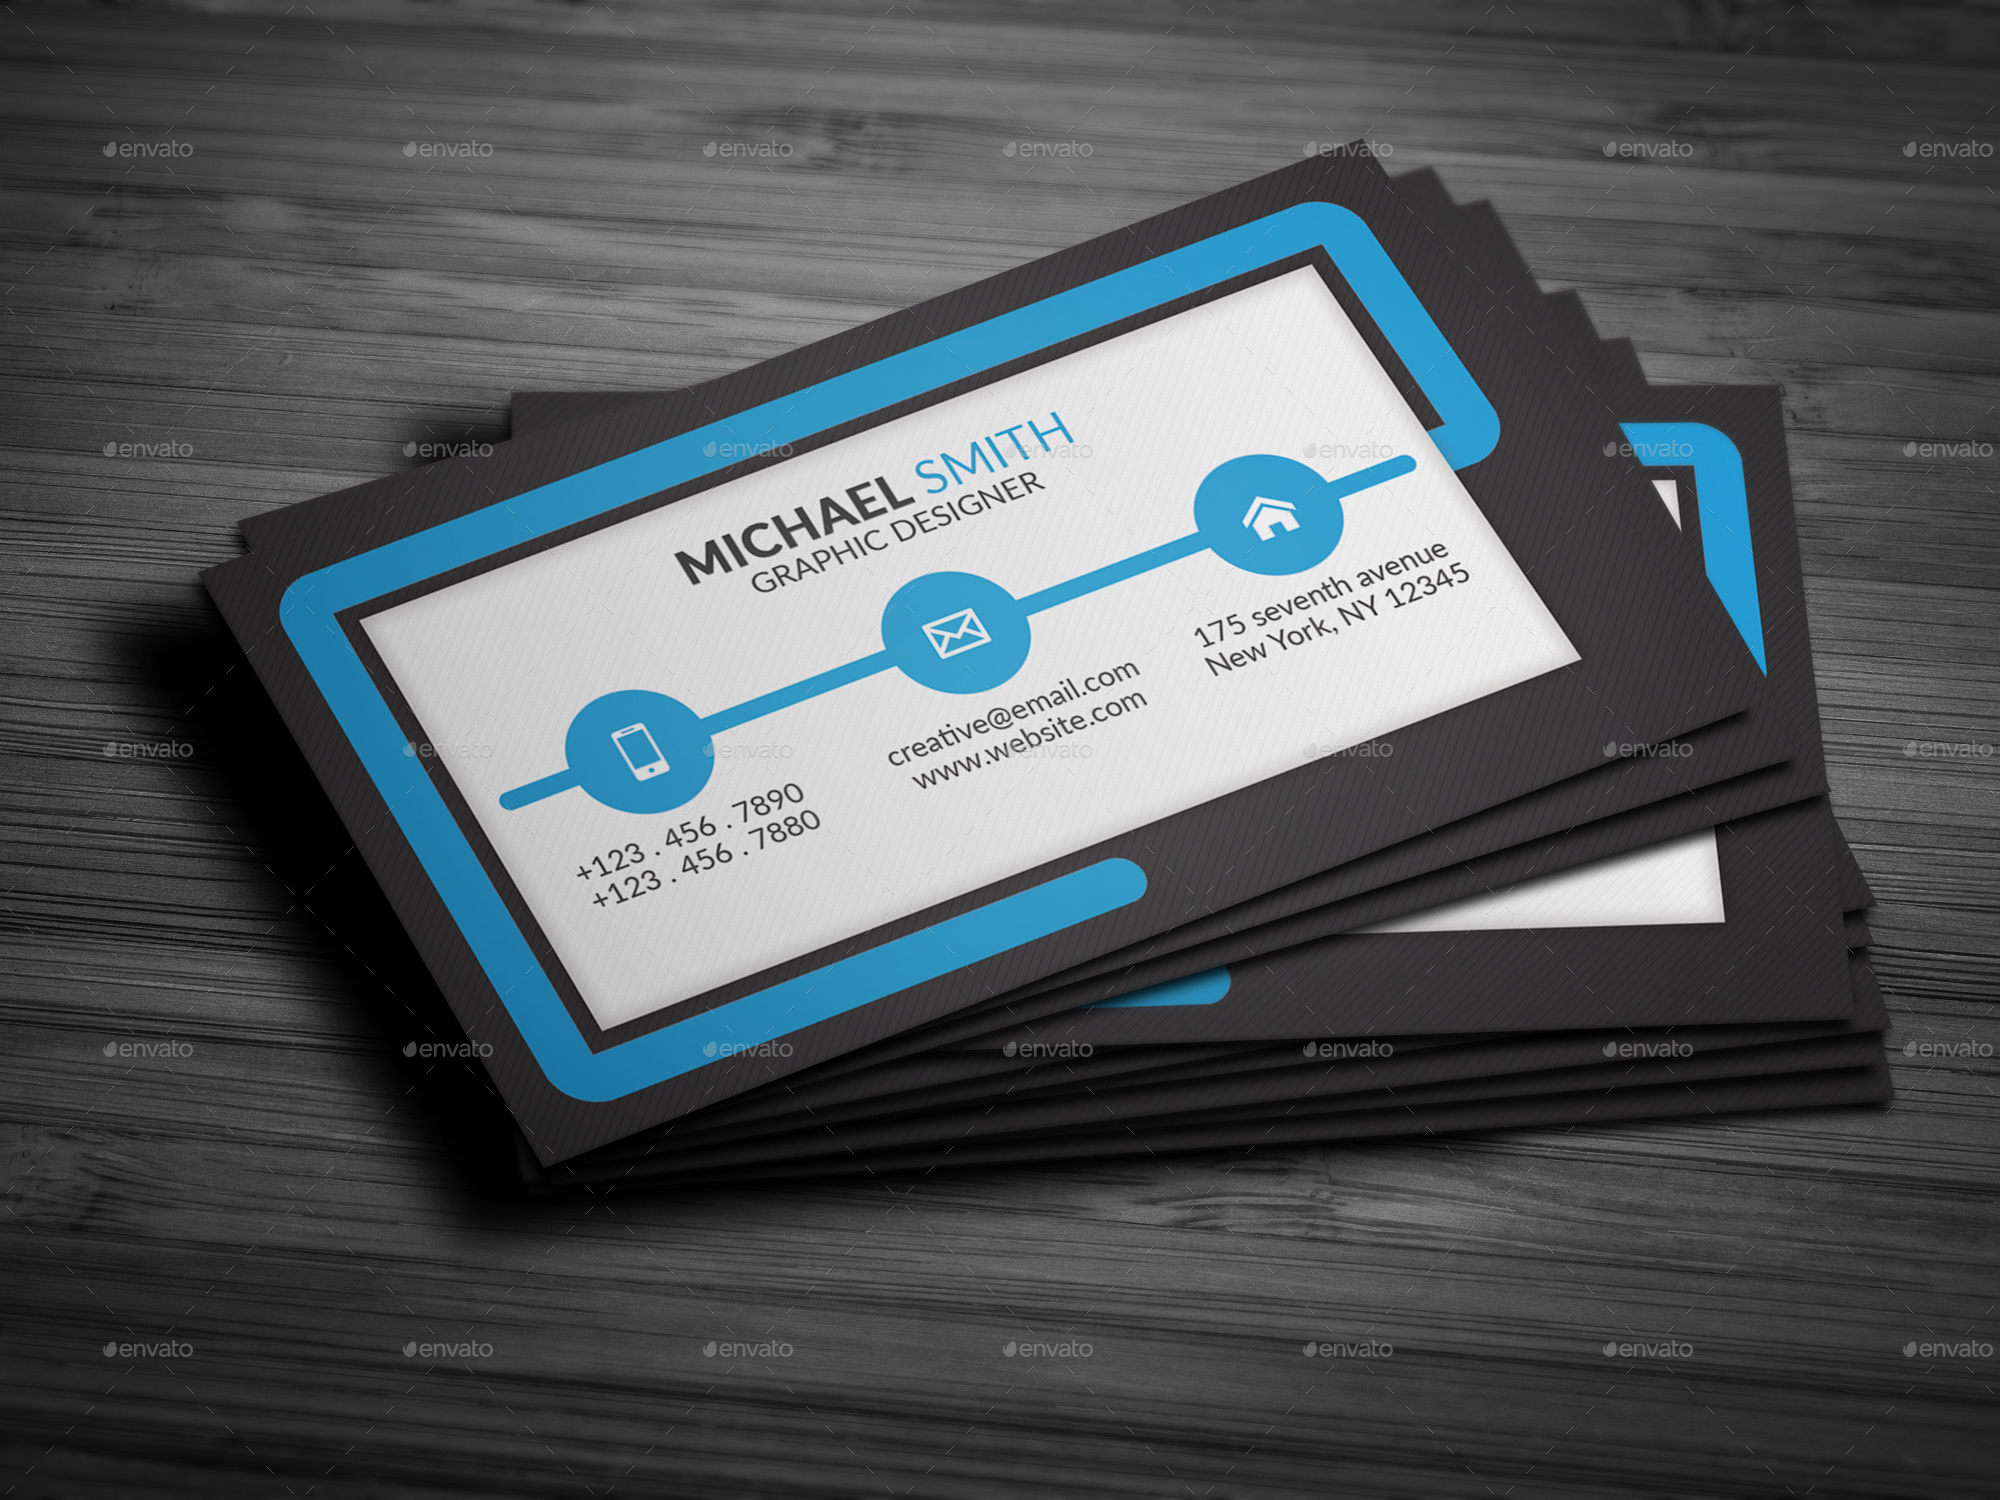 Plumbing business card by geniuspoint graphicriver plumbing business card business cards print templates 01previewg 02previewg colourmoves